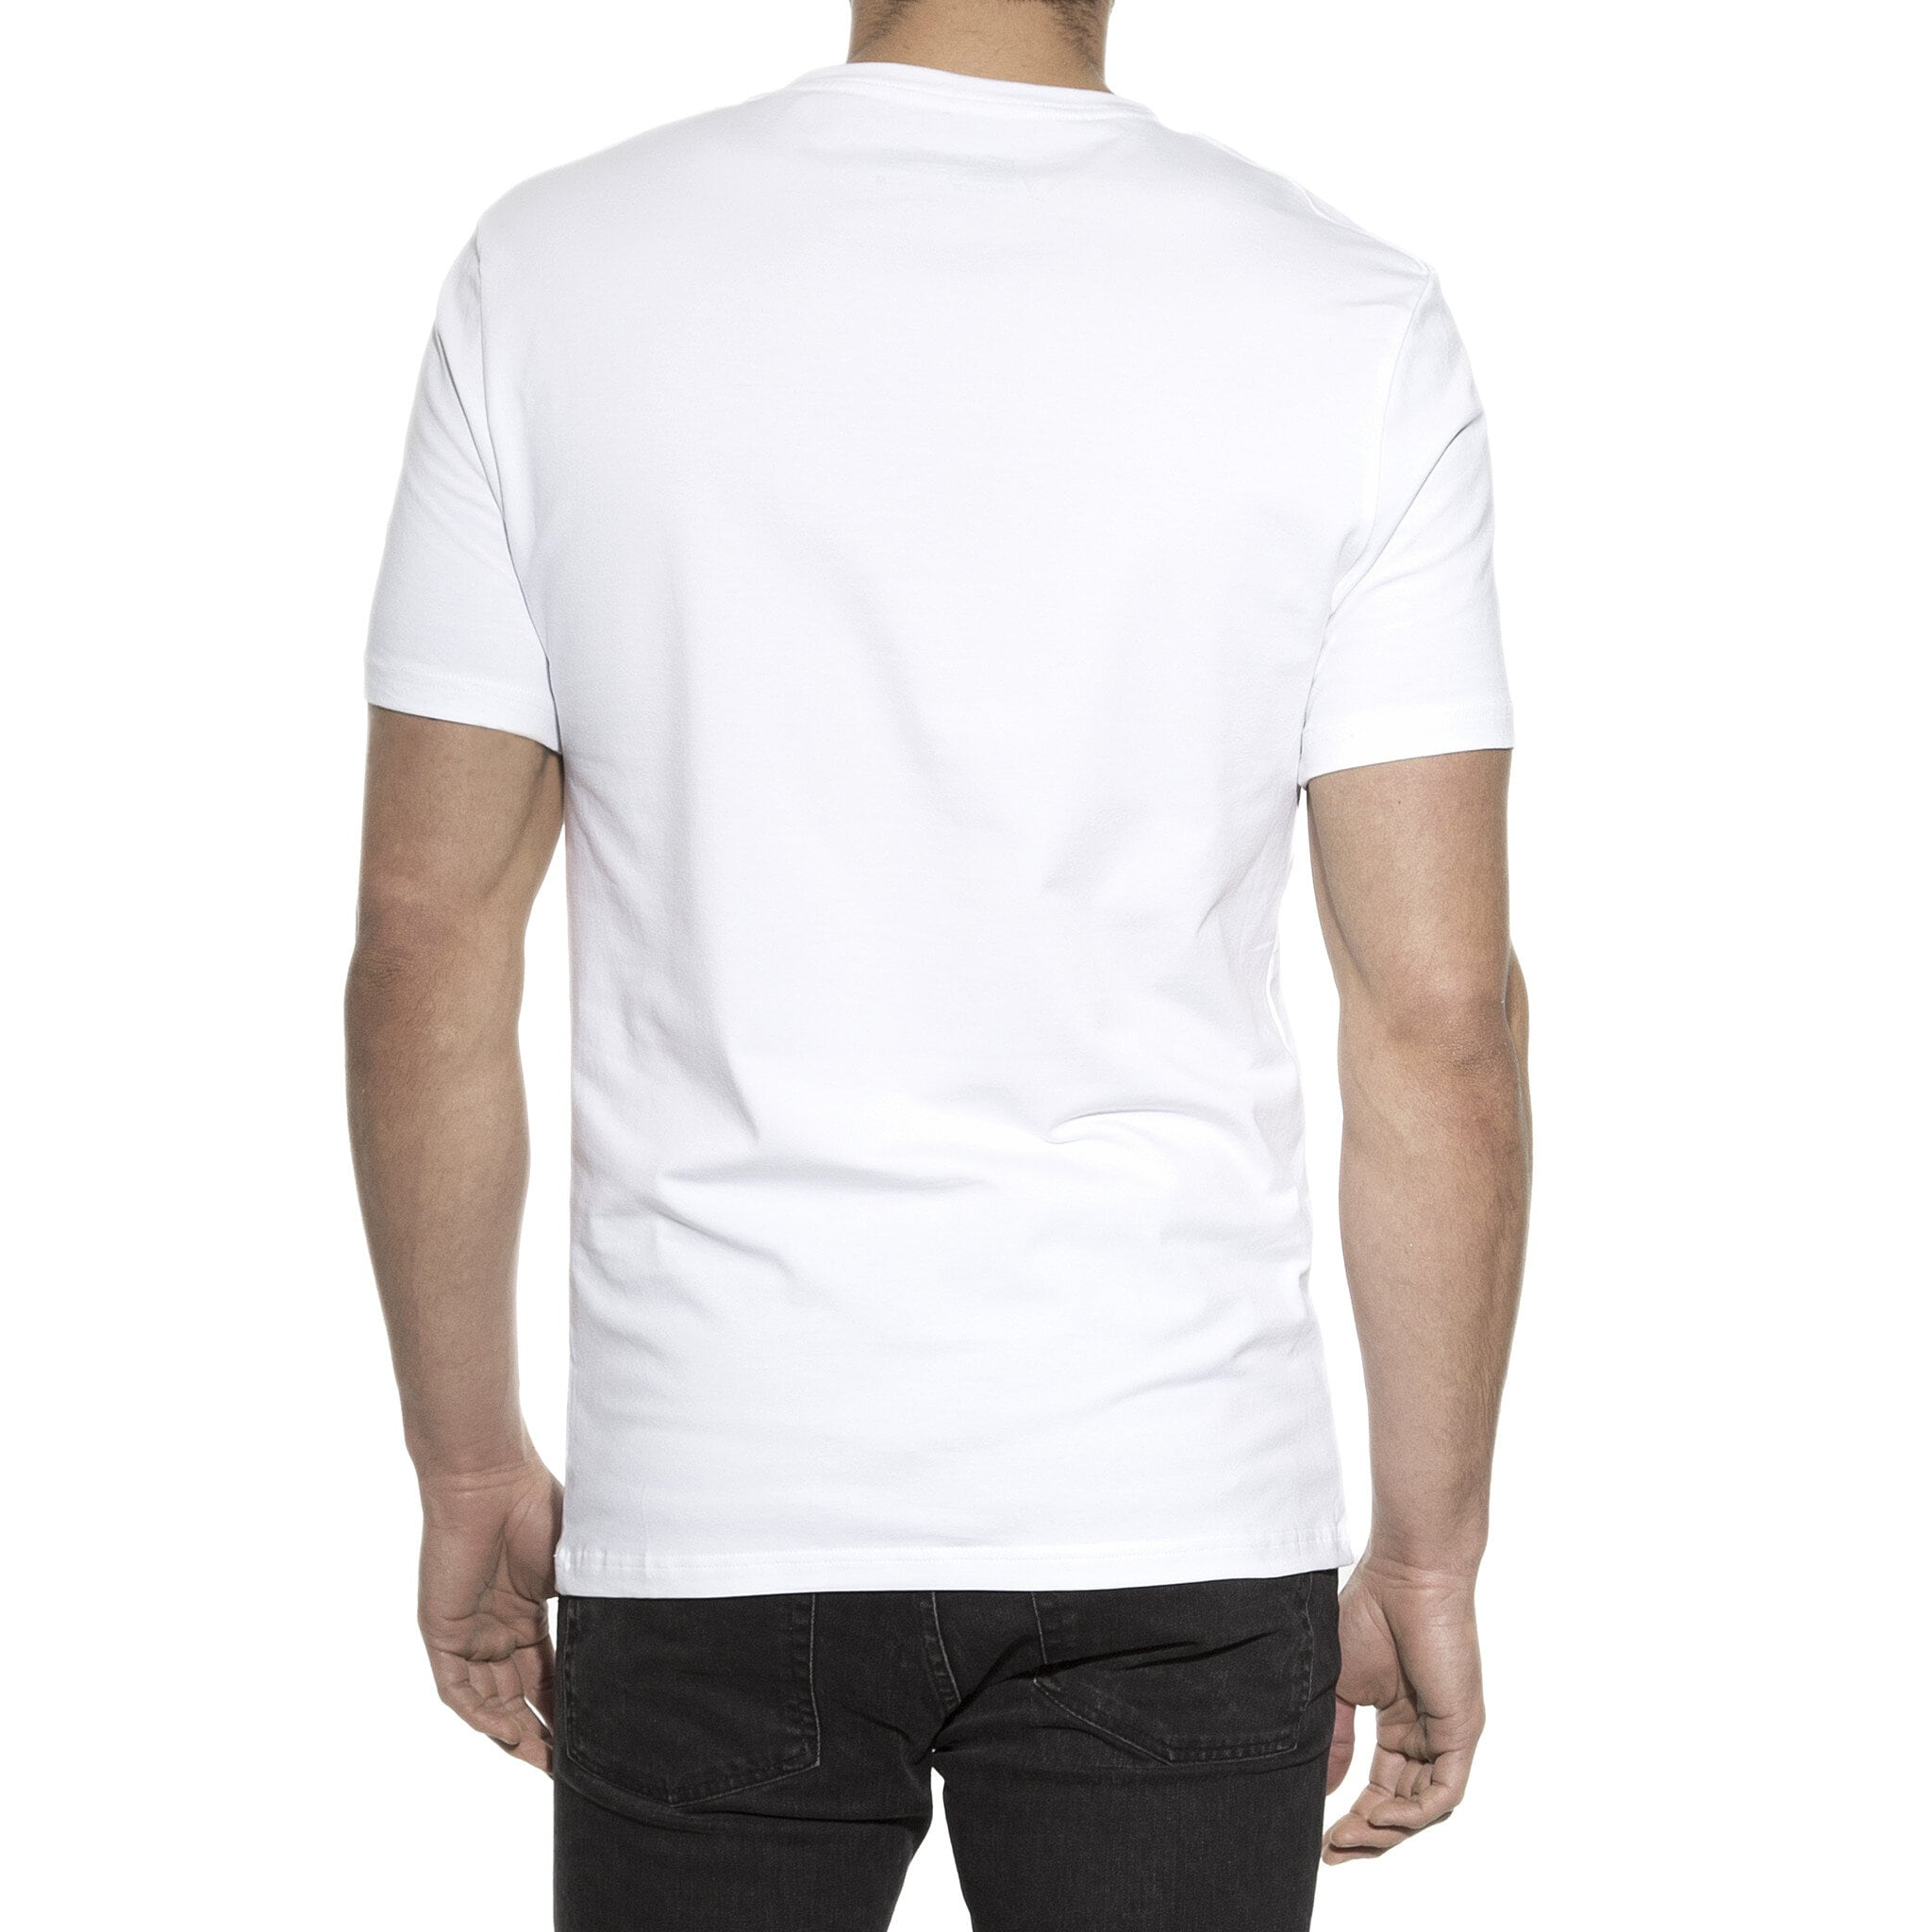 102201_Man_V-Neck_white_3